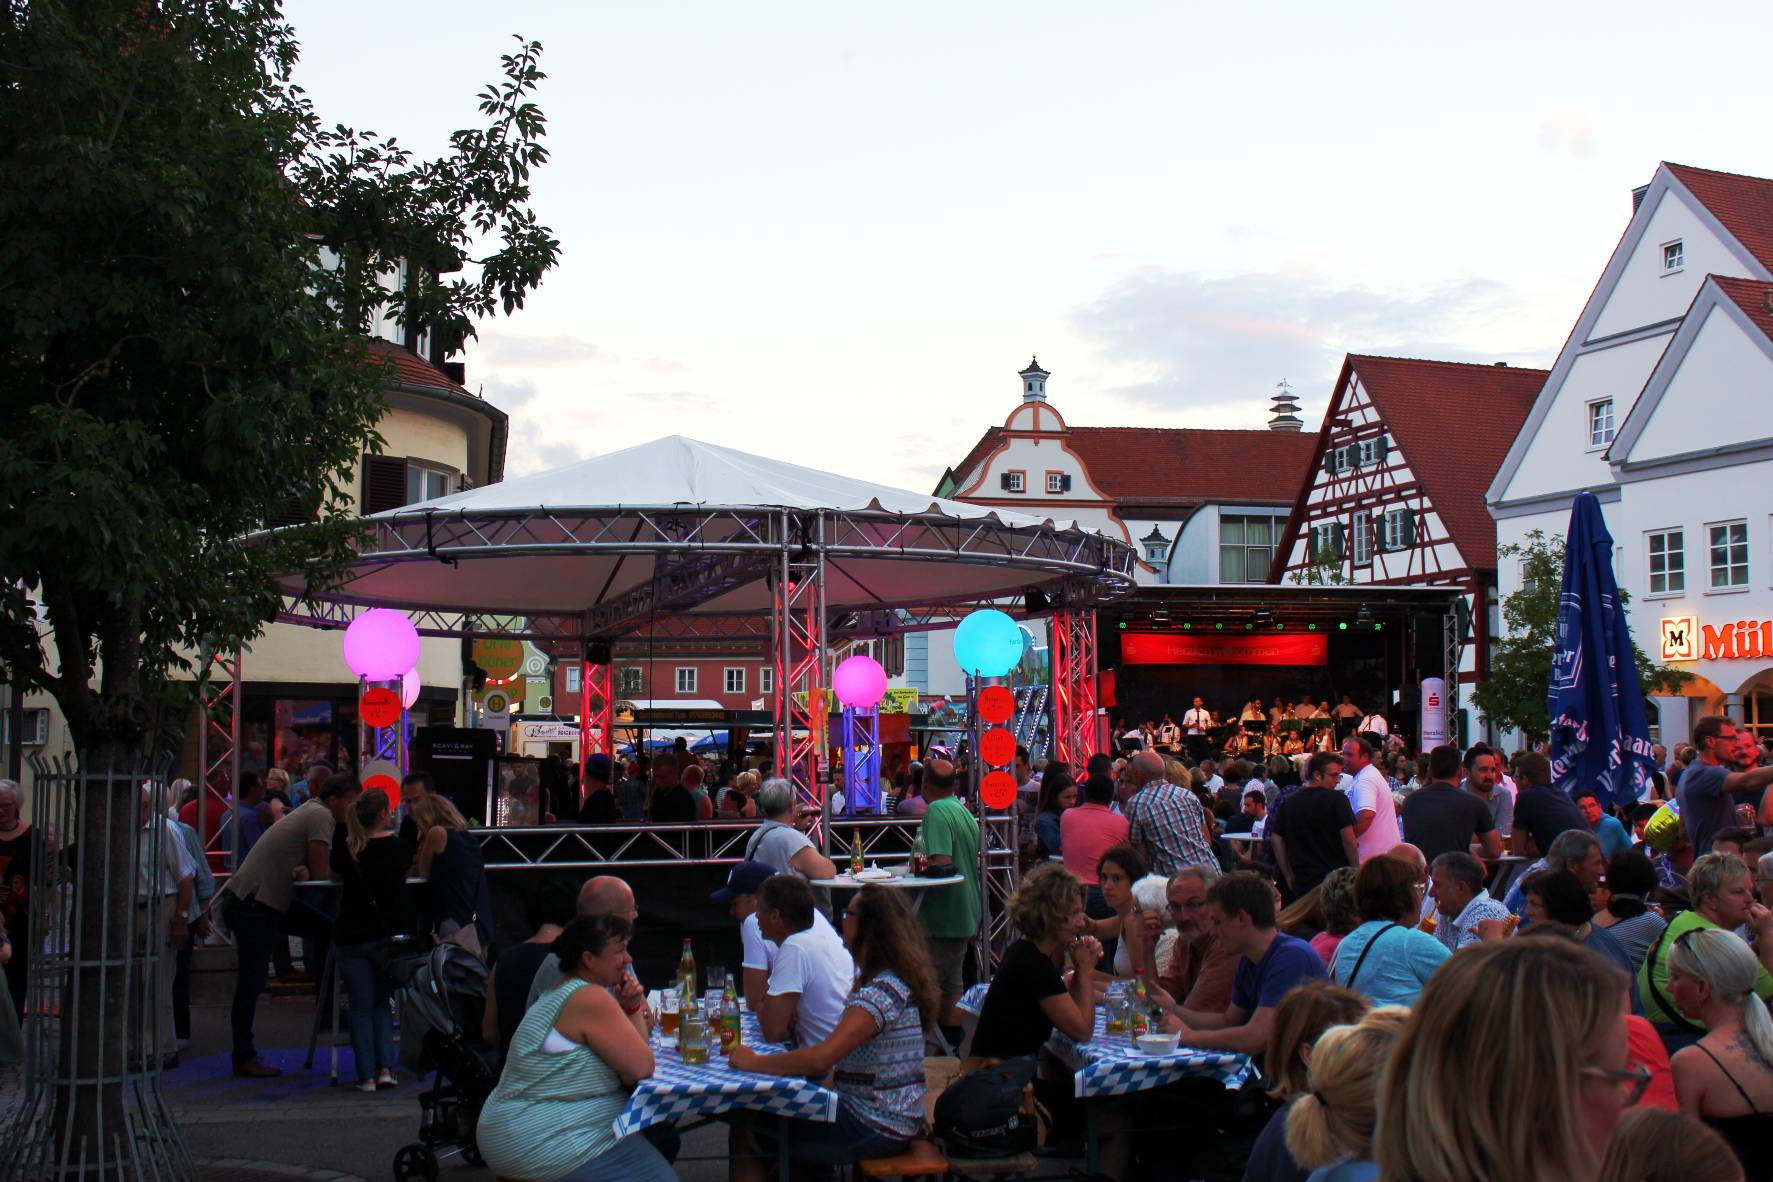 Cocktailstand; Cateringstand; Stadtfest; Festival; Open-Air; Bühne